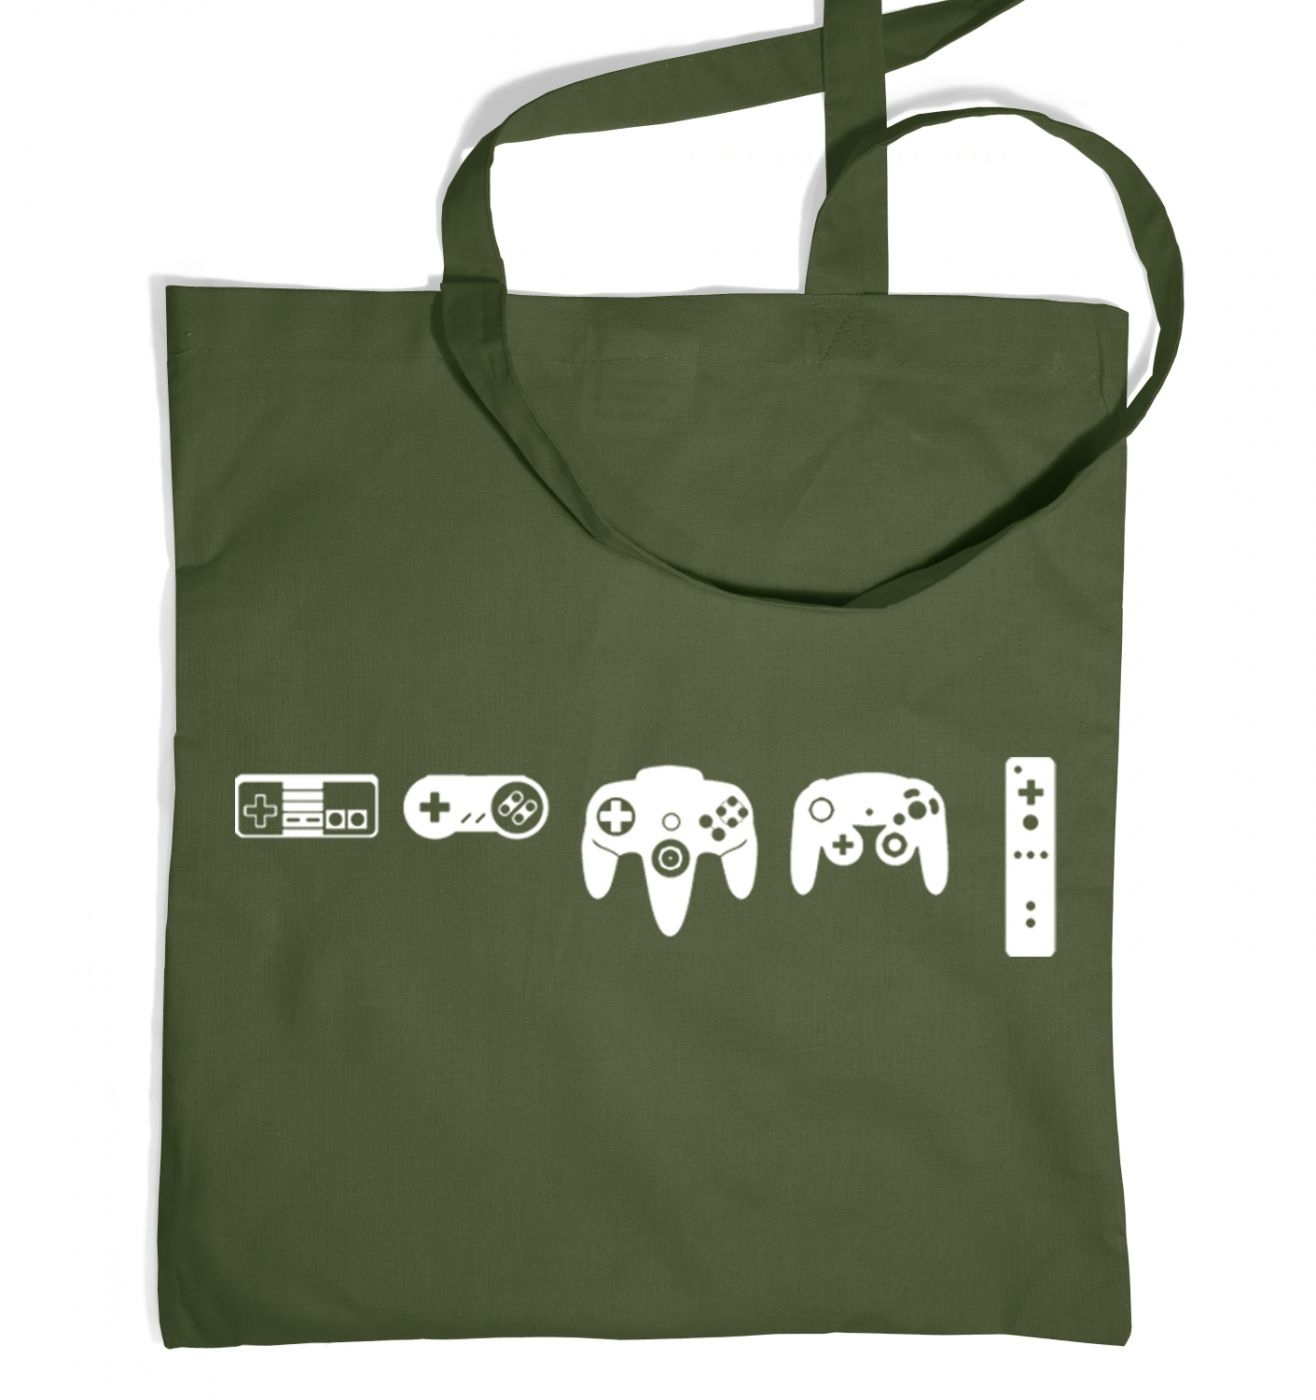 Evolution Of Nintendo tote bag